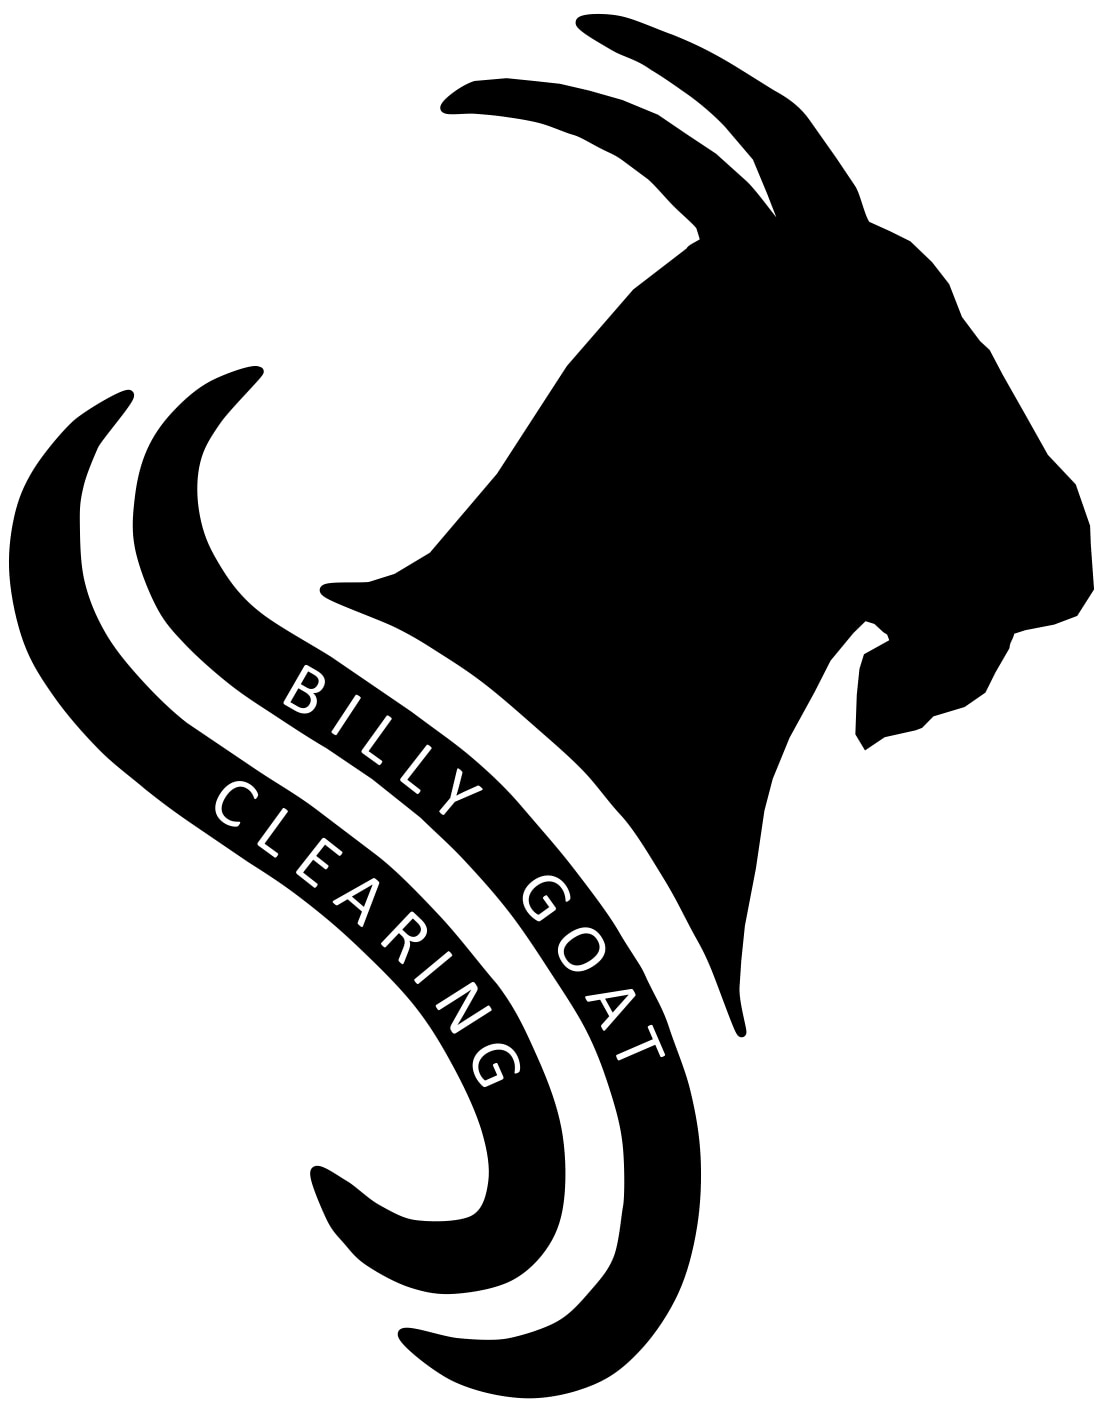 Billy Goat Clearing logo